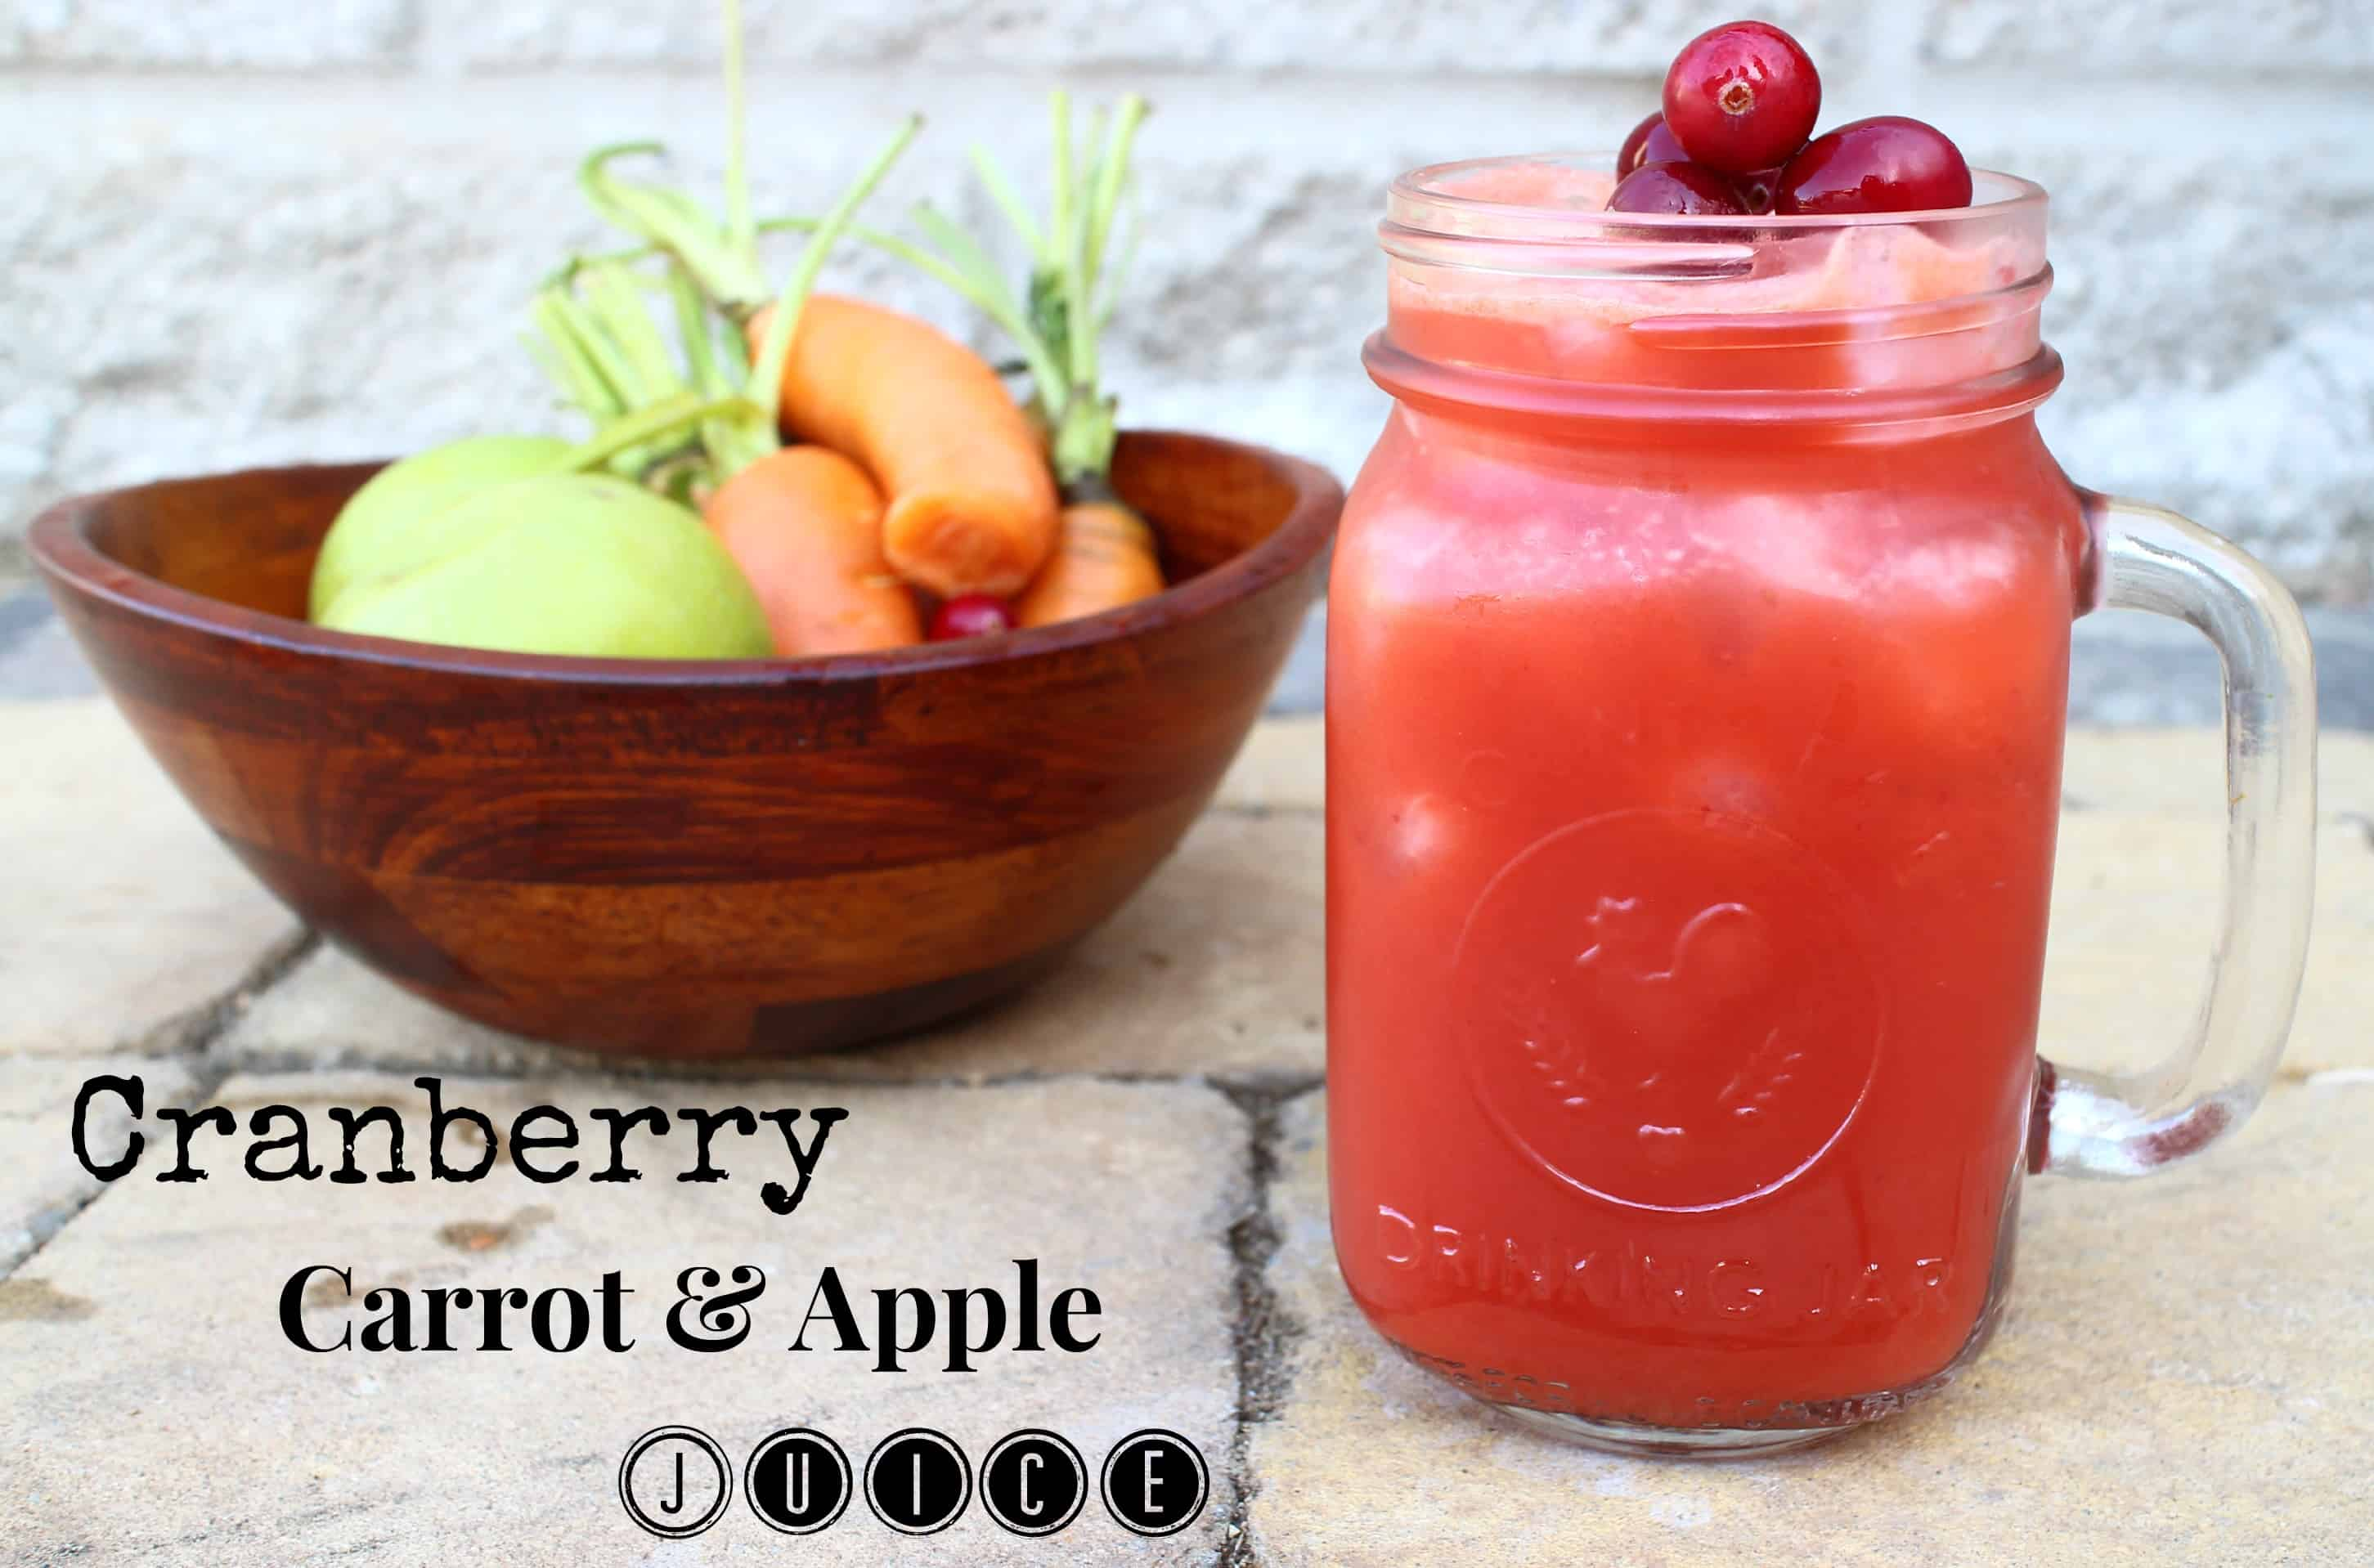 Cranberry carrot apple juicer recipe